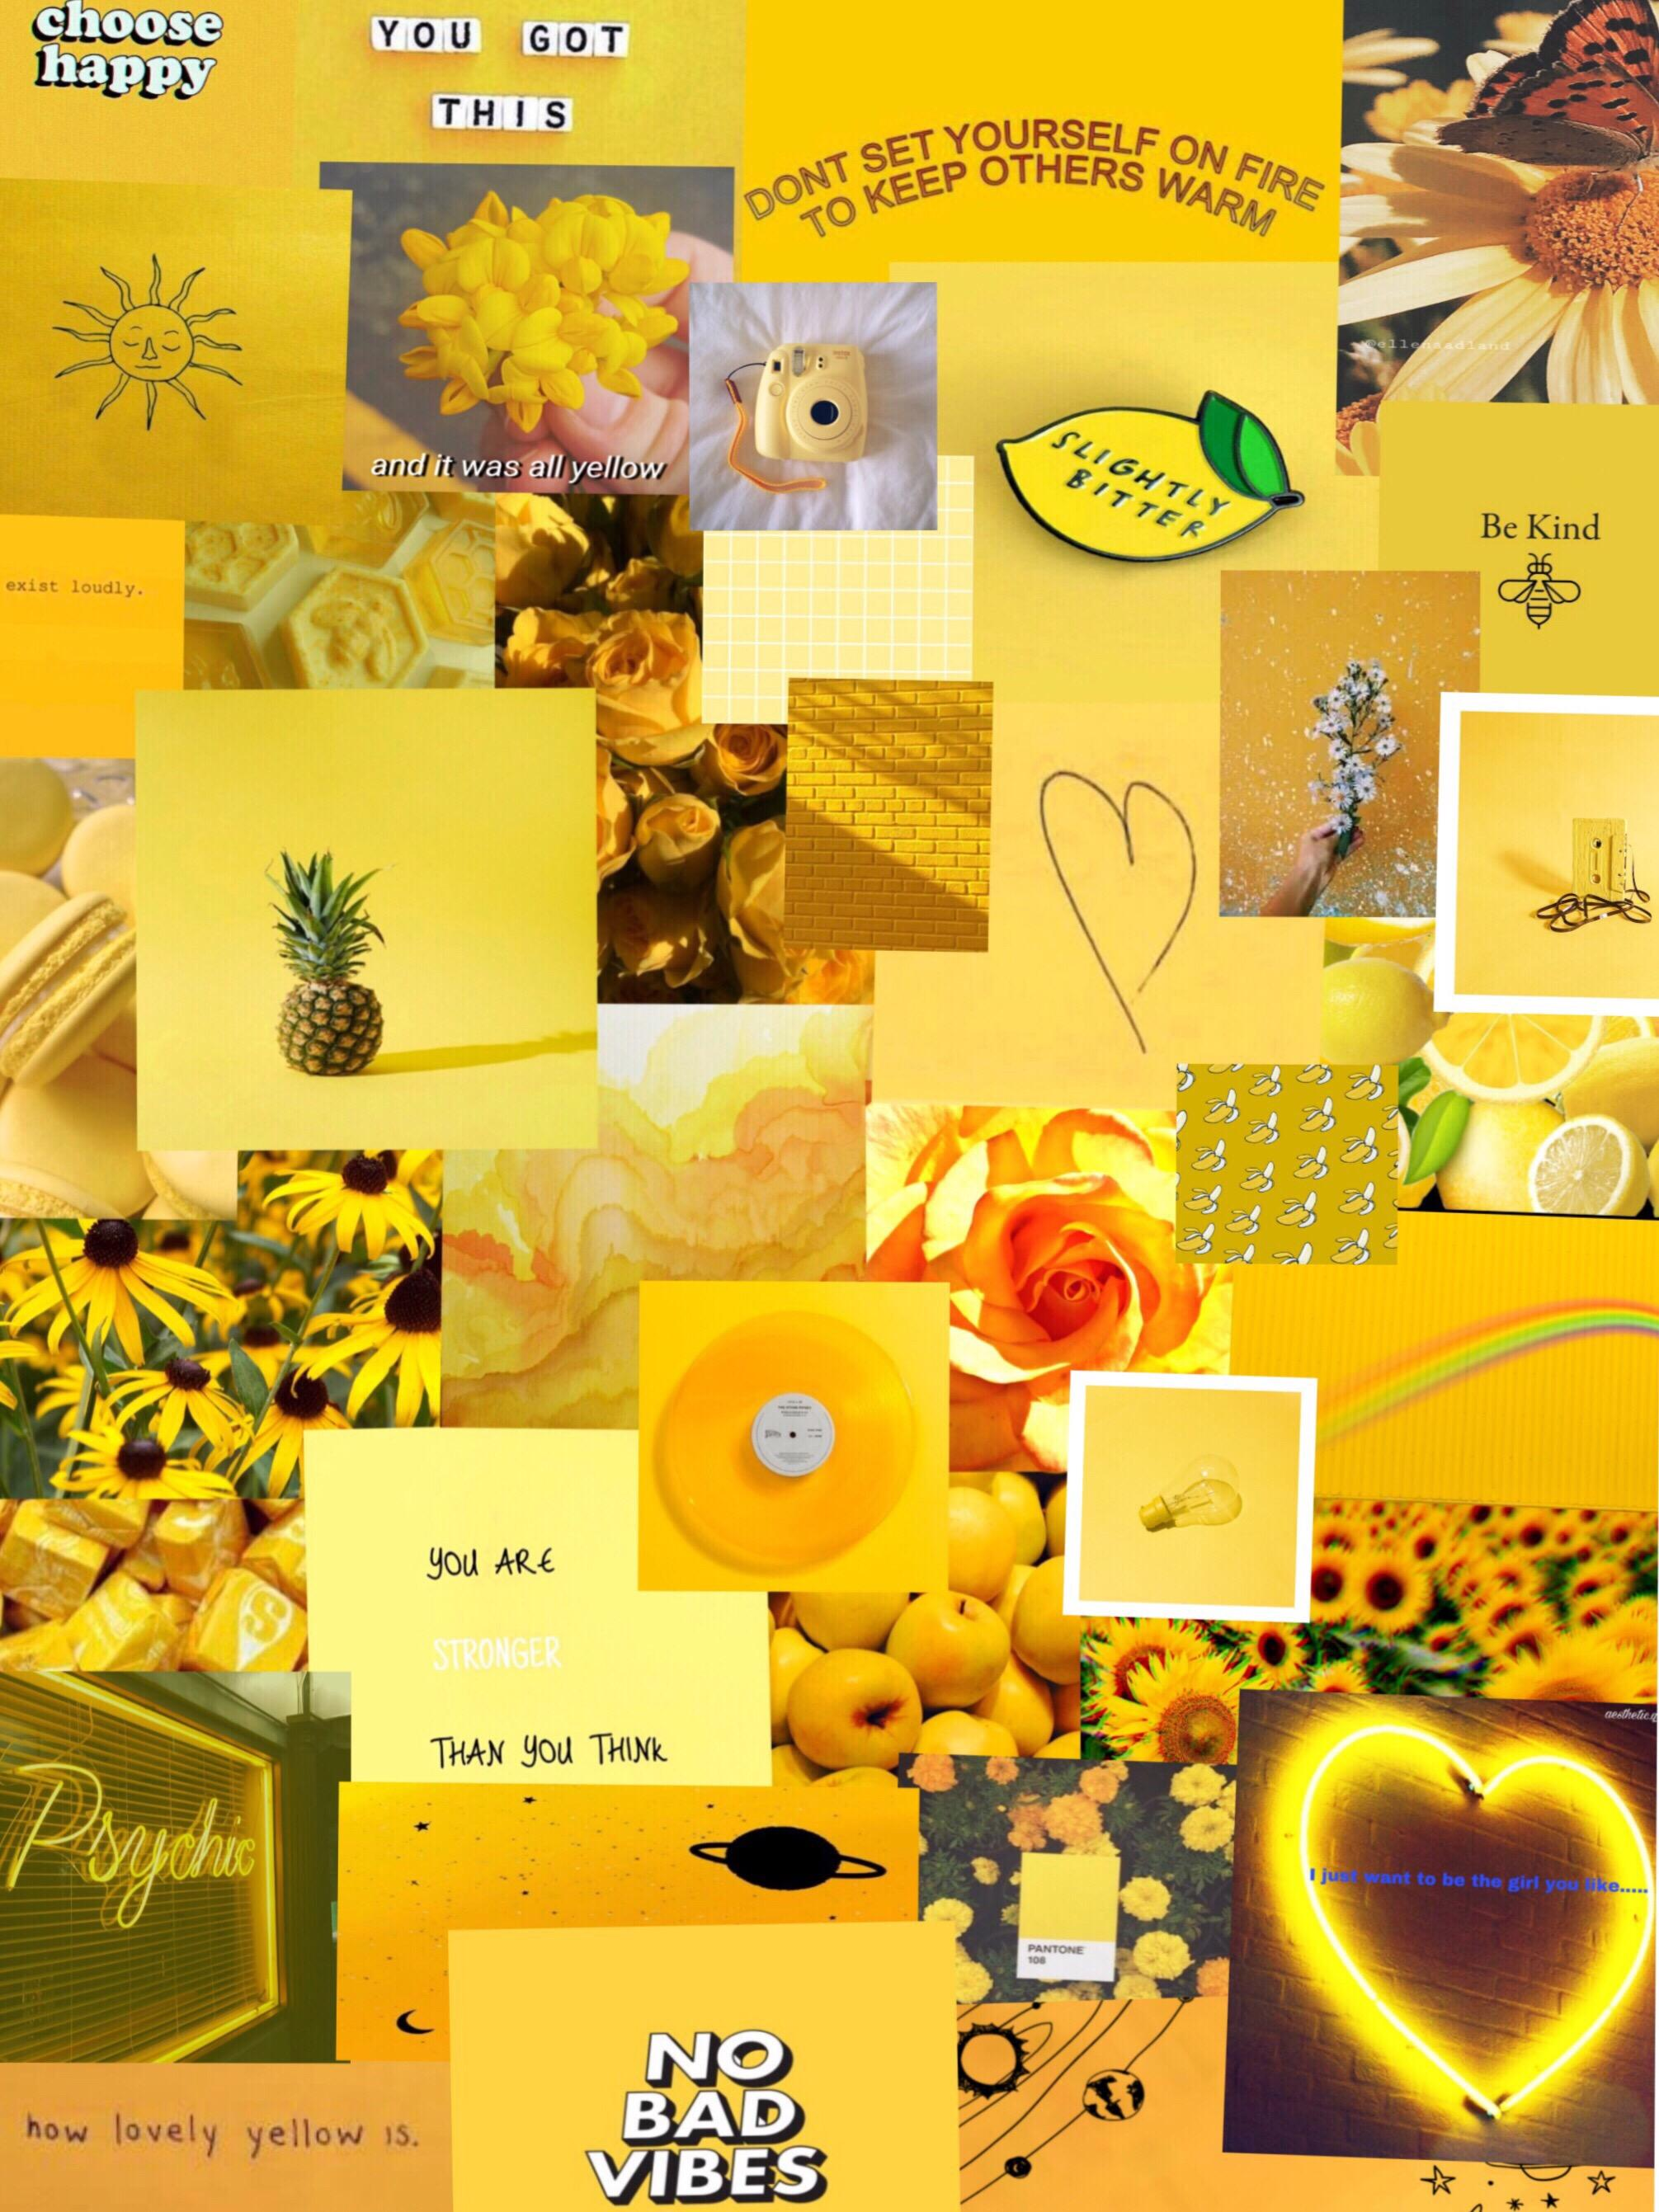 Yellow Aesthetic Girls Wallpapers Wallpaper Cave Aesthetic light yellow background 1000 free download vector. yellow aesthetic girls wallpapers